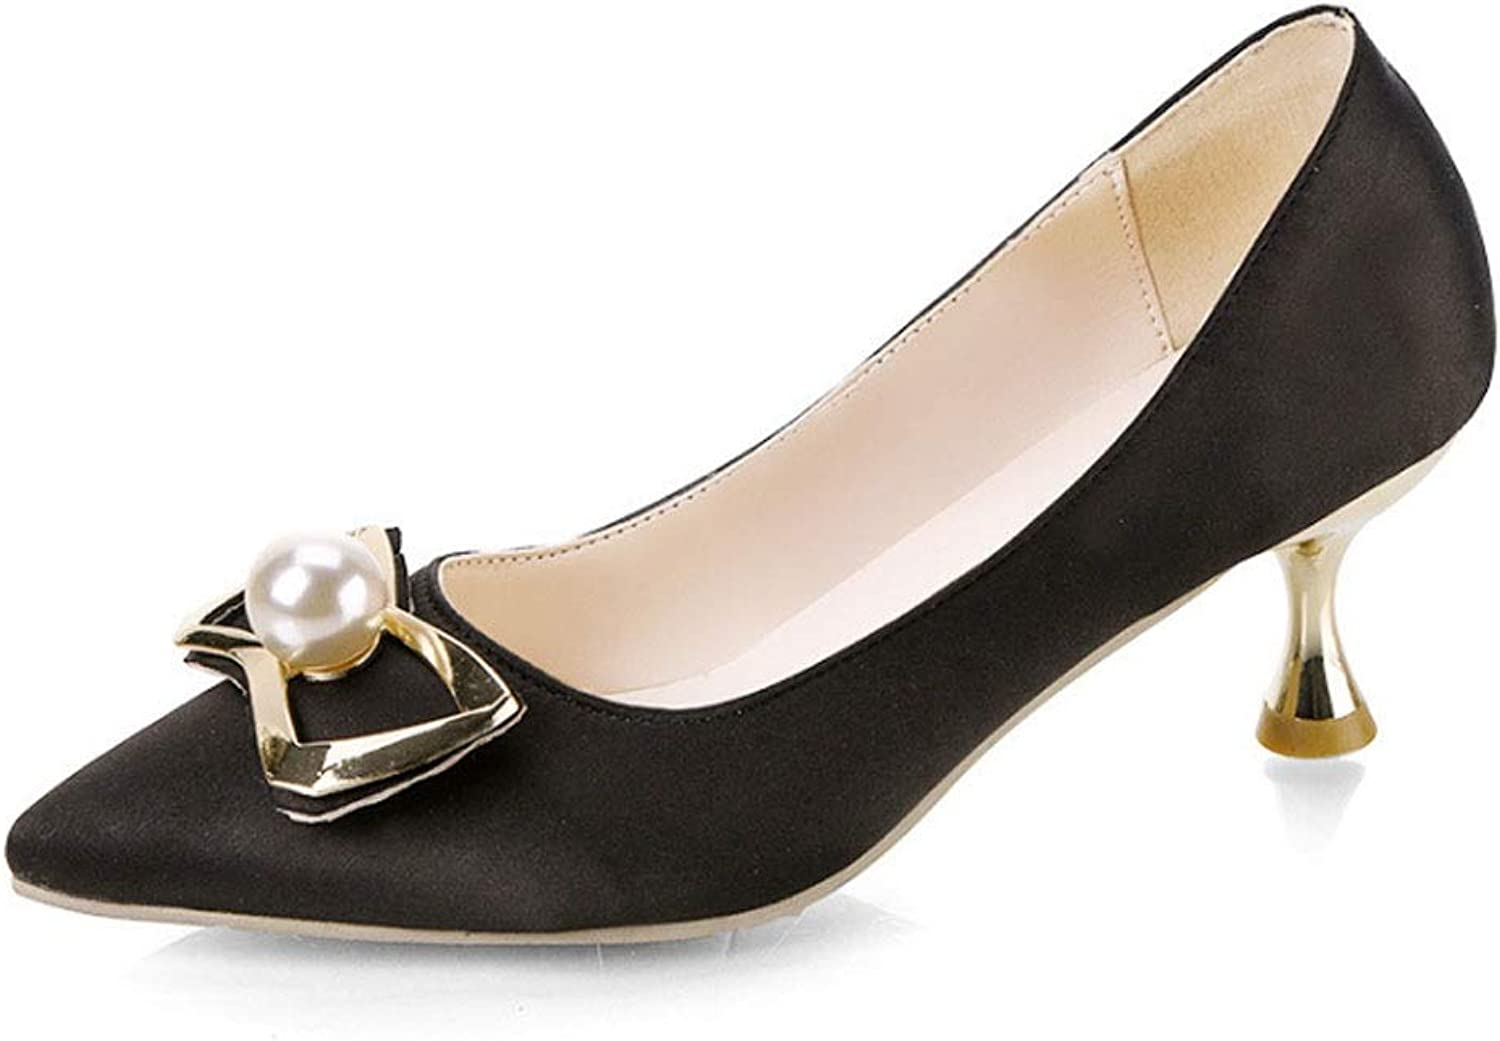 Women's Sandals Summer Pointed Bows with Casual Party Office Court shoes (color   C, Size   7.5 US)